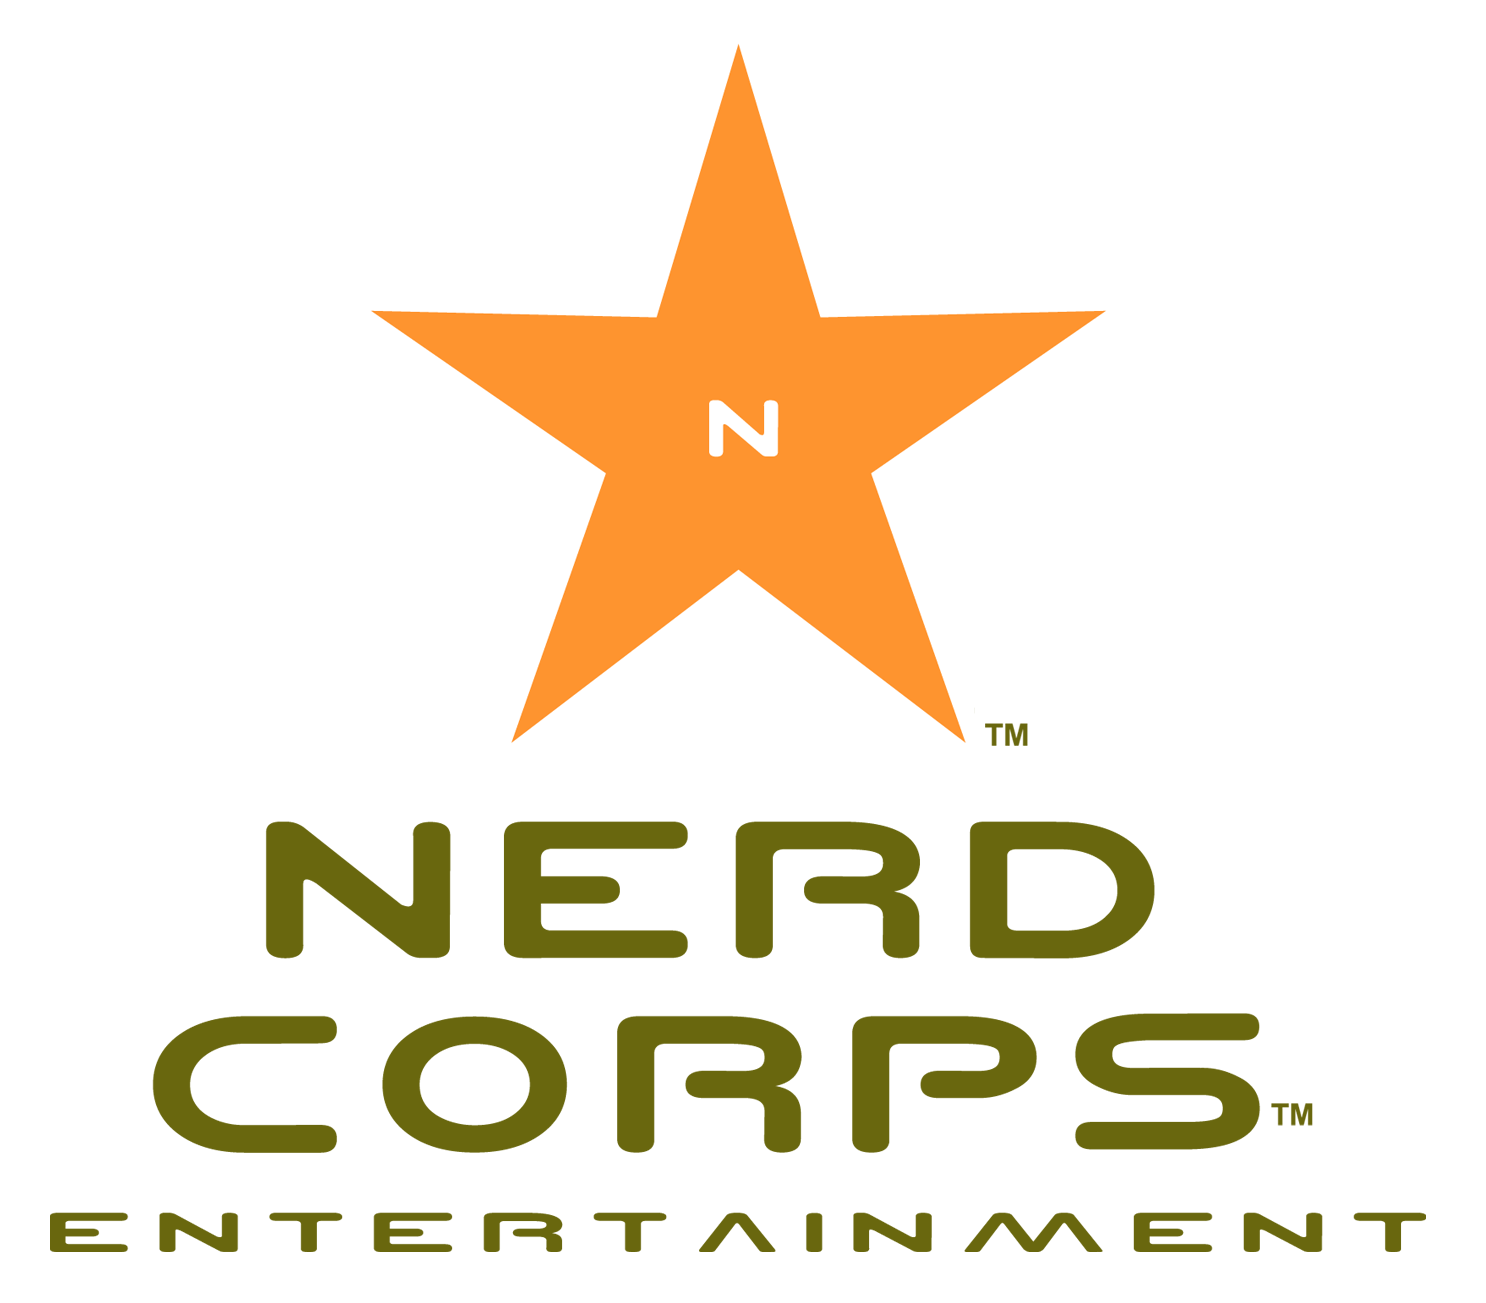 Nerd_Corps_Entertainment_logo.png